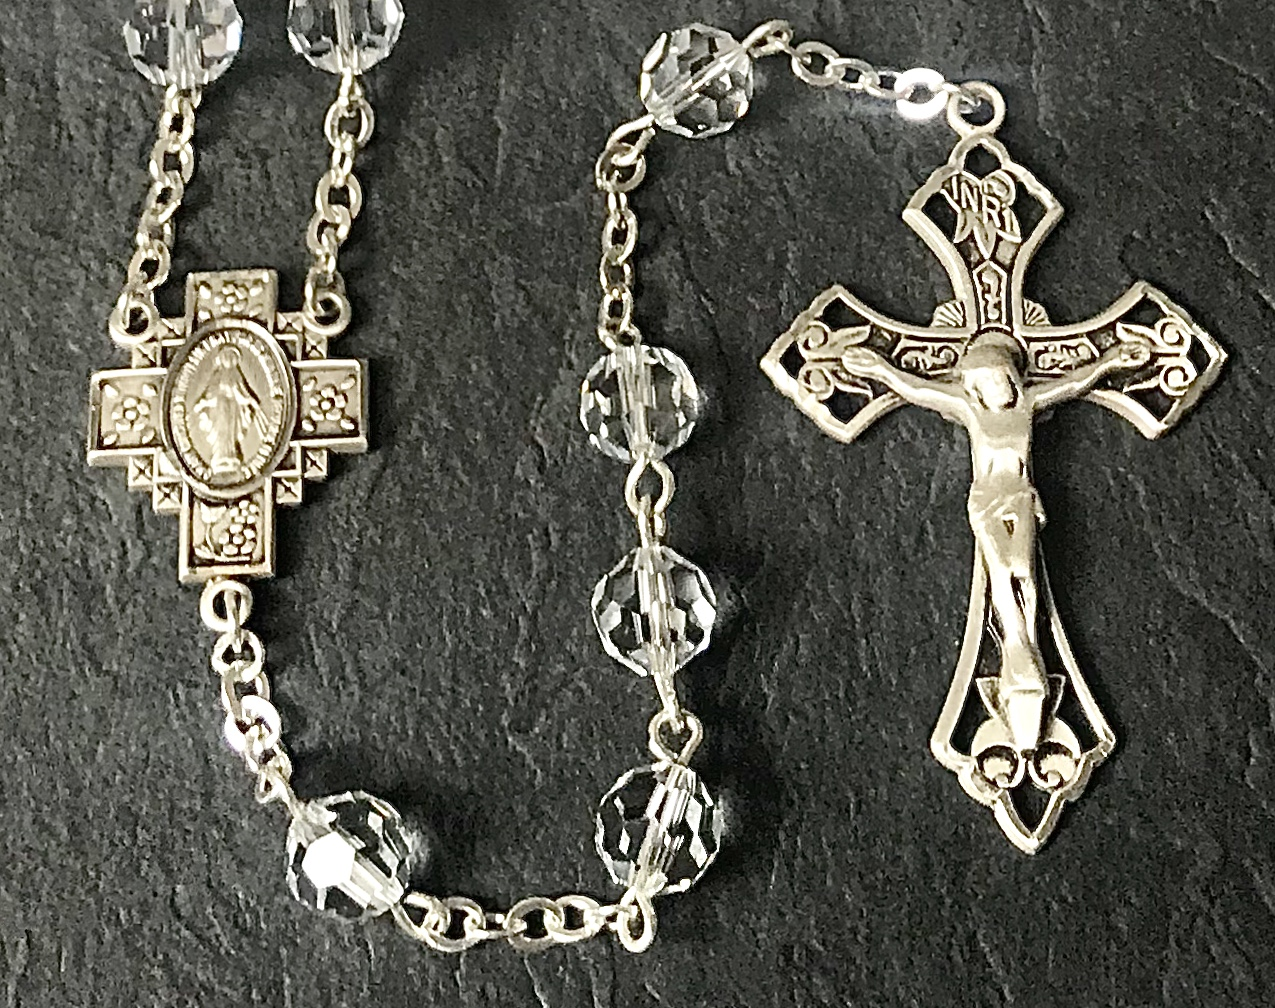 7mm ROUND SWAROVSKI CRYSTAL ALL STERLING EXCELSIOR ROSARY WITH STERLING SILVER WIRE, CHAIN, CROSS, & CENTER